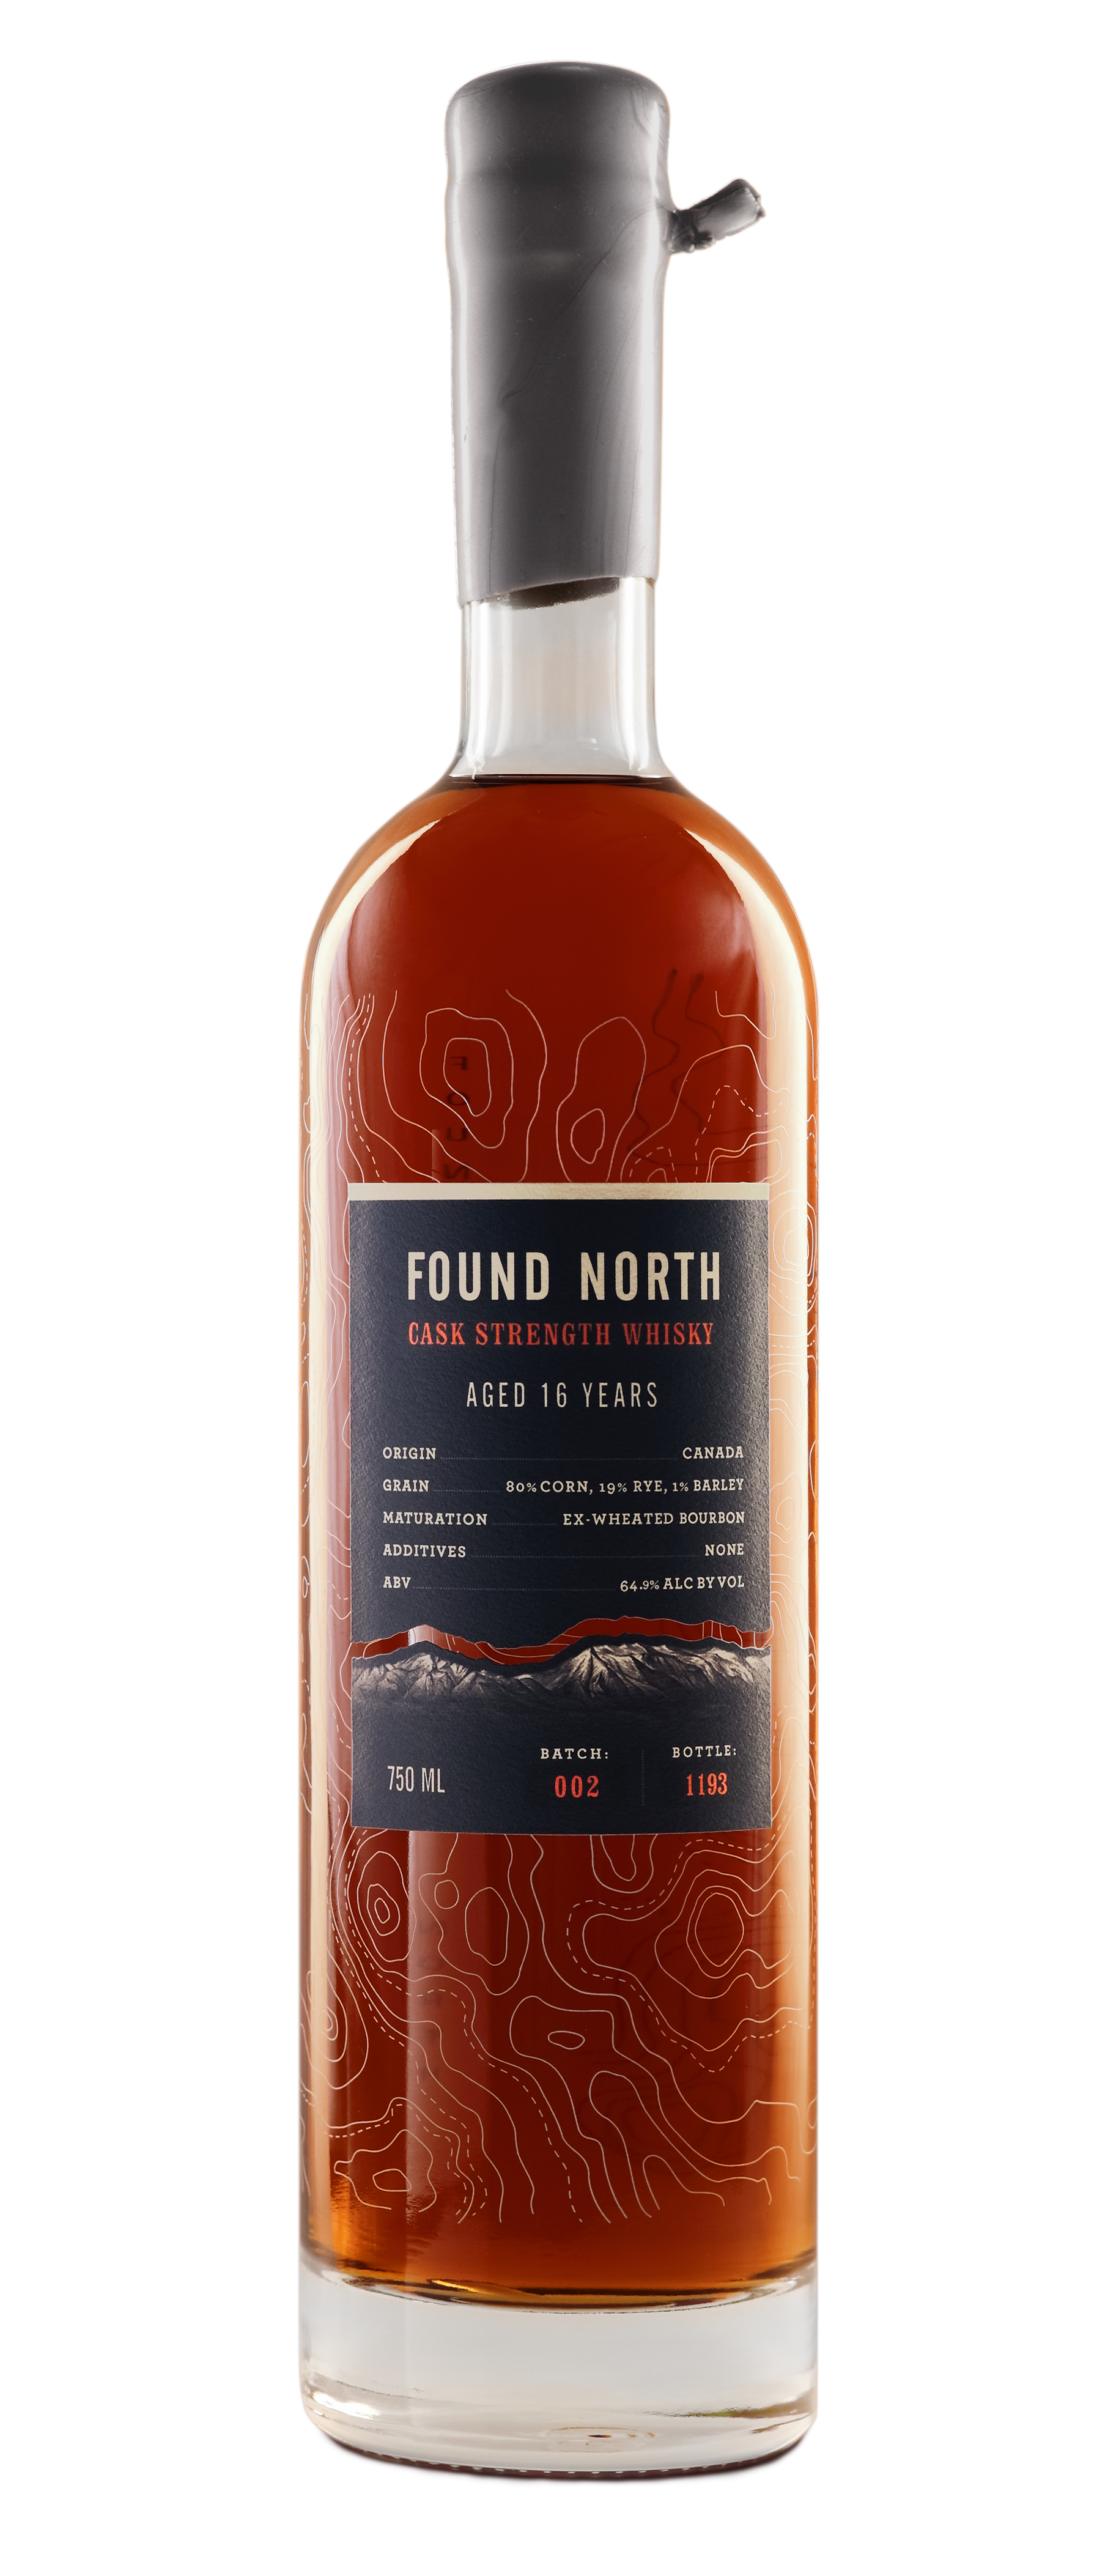 Image of Batch 002 Bottle of Found North